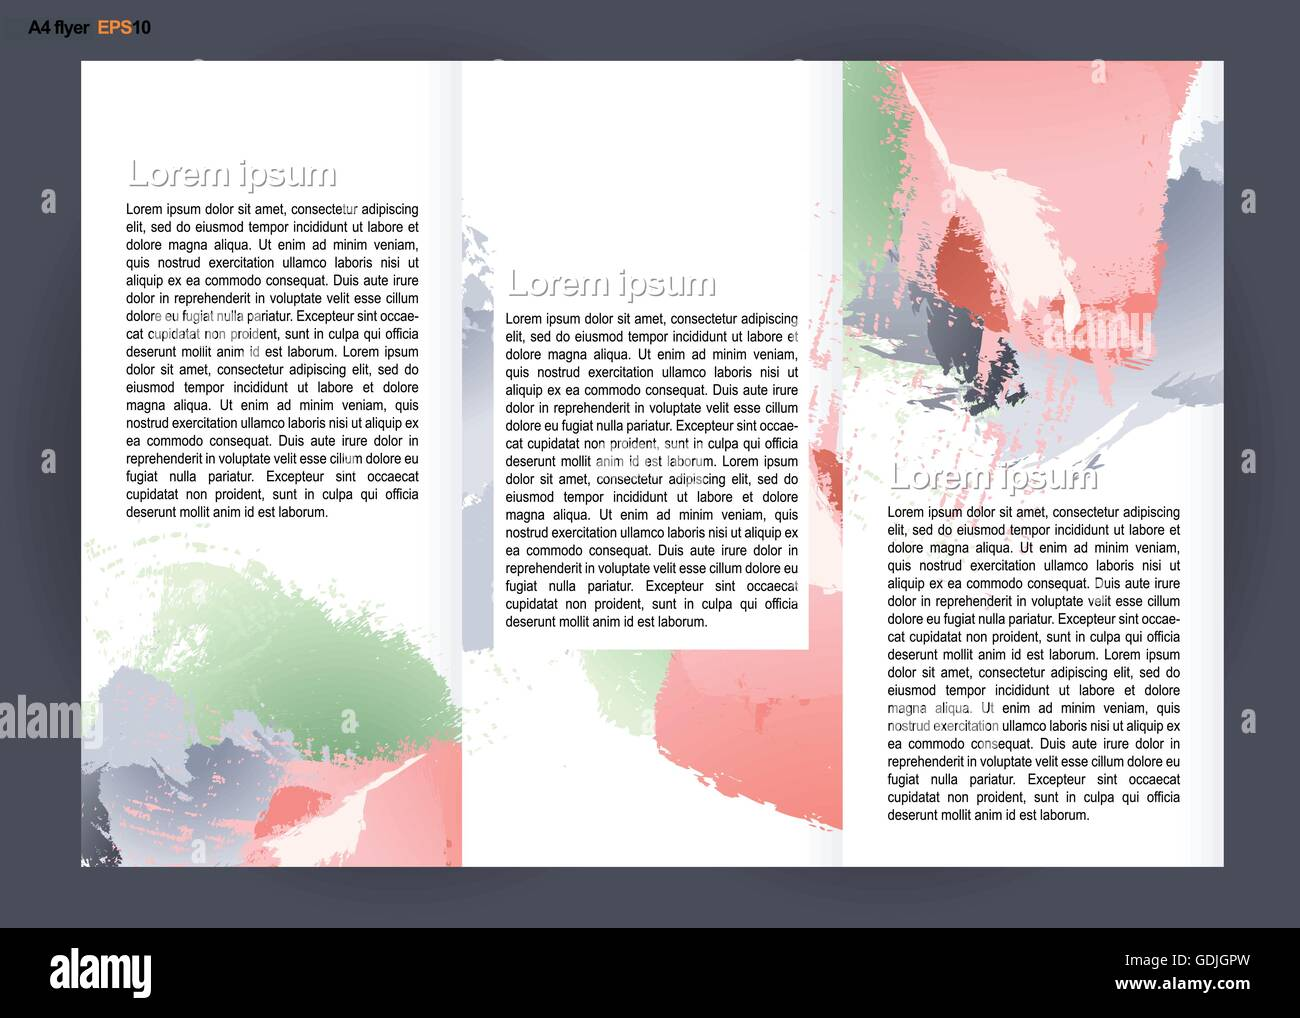 Abstract Print A4 Design In 3 Parts With Colored Brush Strokes For Flyers Banners Or Posters Over Silver Background Digital V